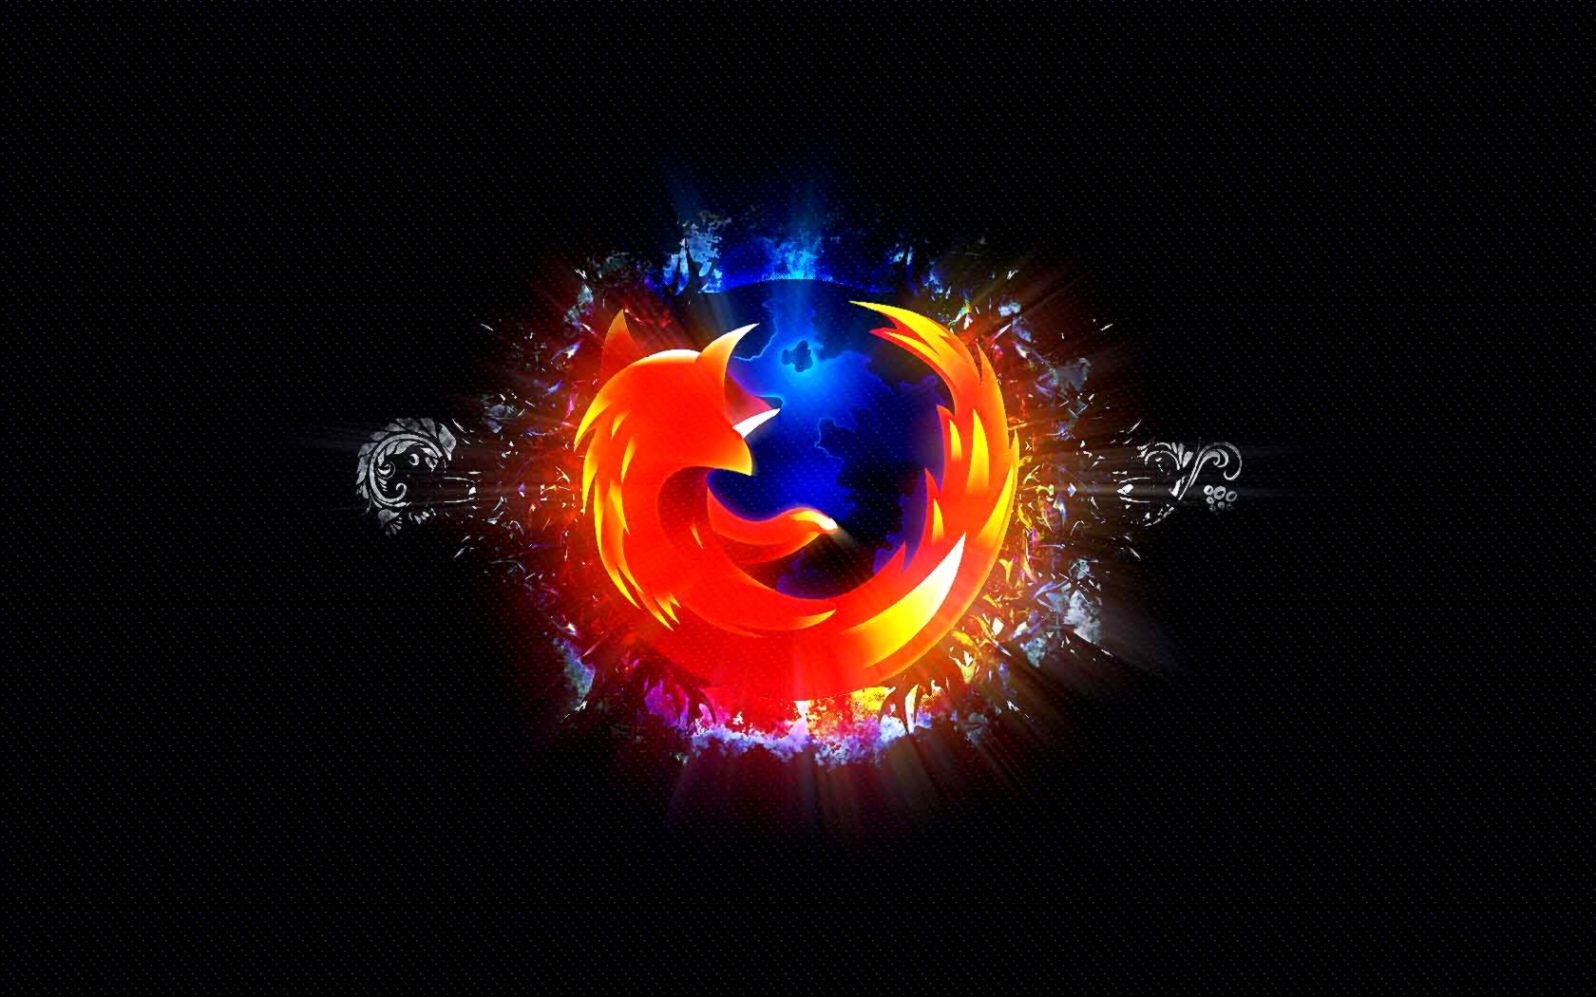 Galaxy mozilla firefox images background zoom wallpapers - How to change firefox background image ...